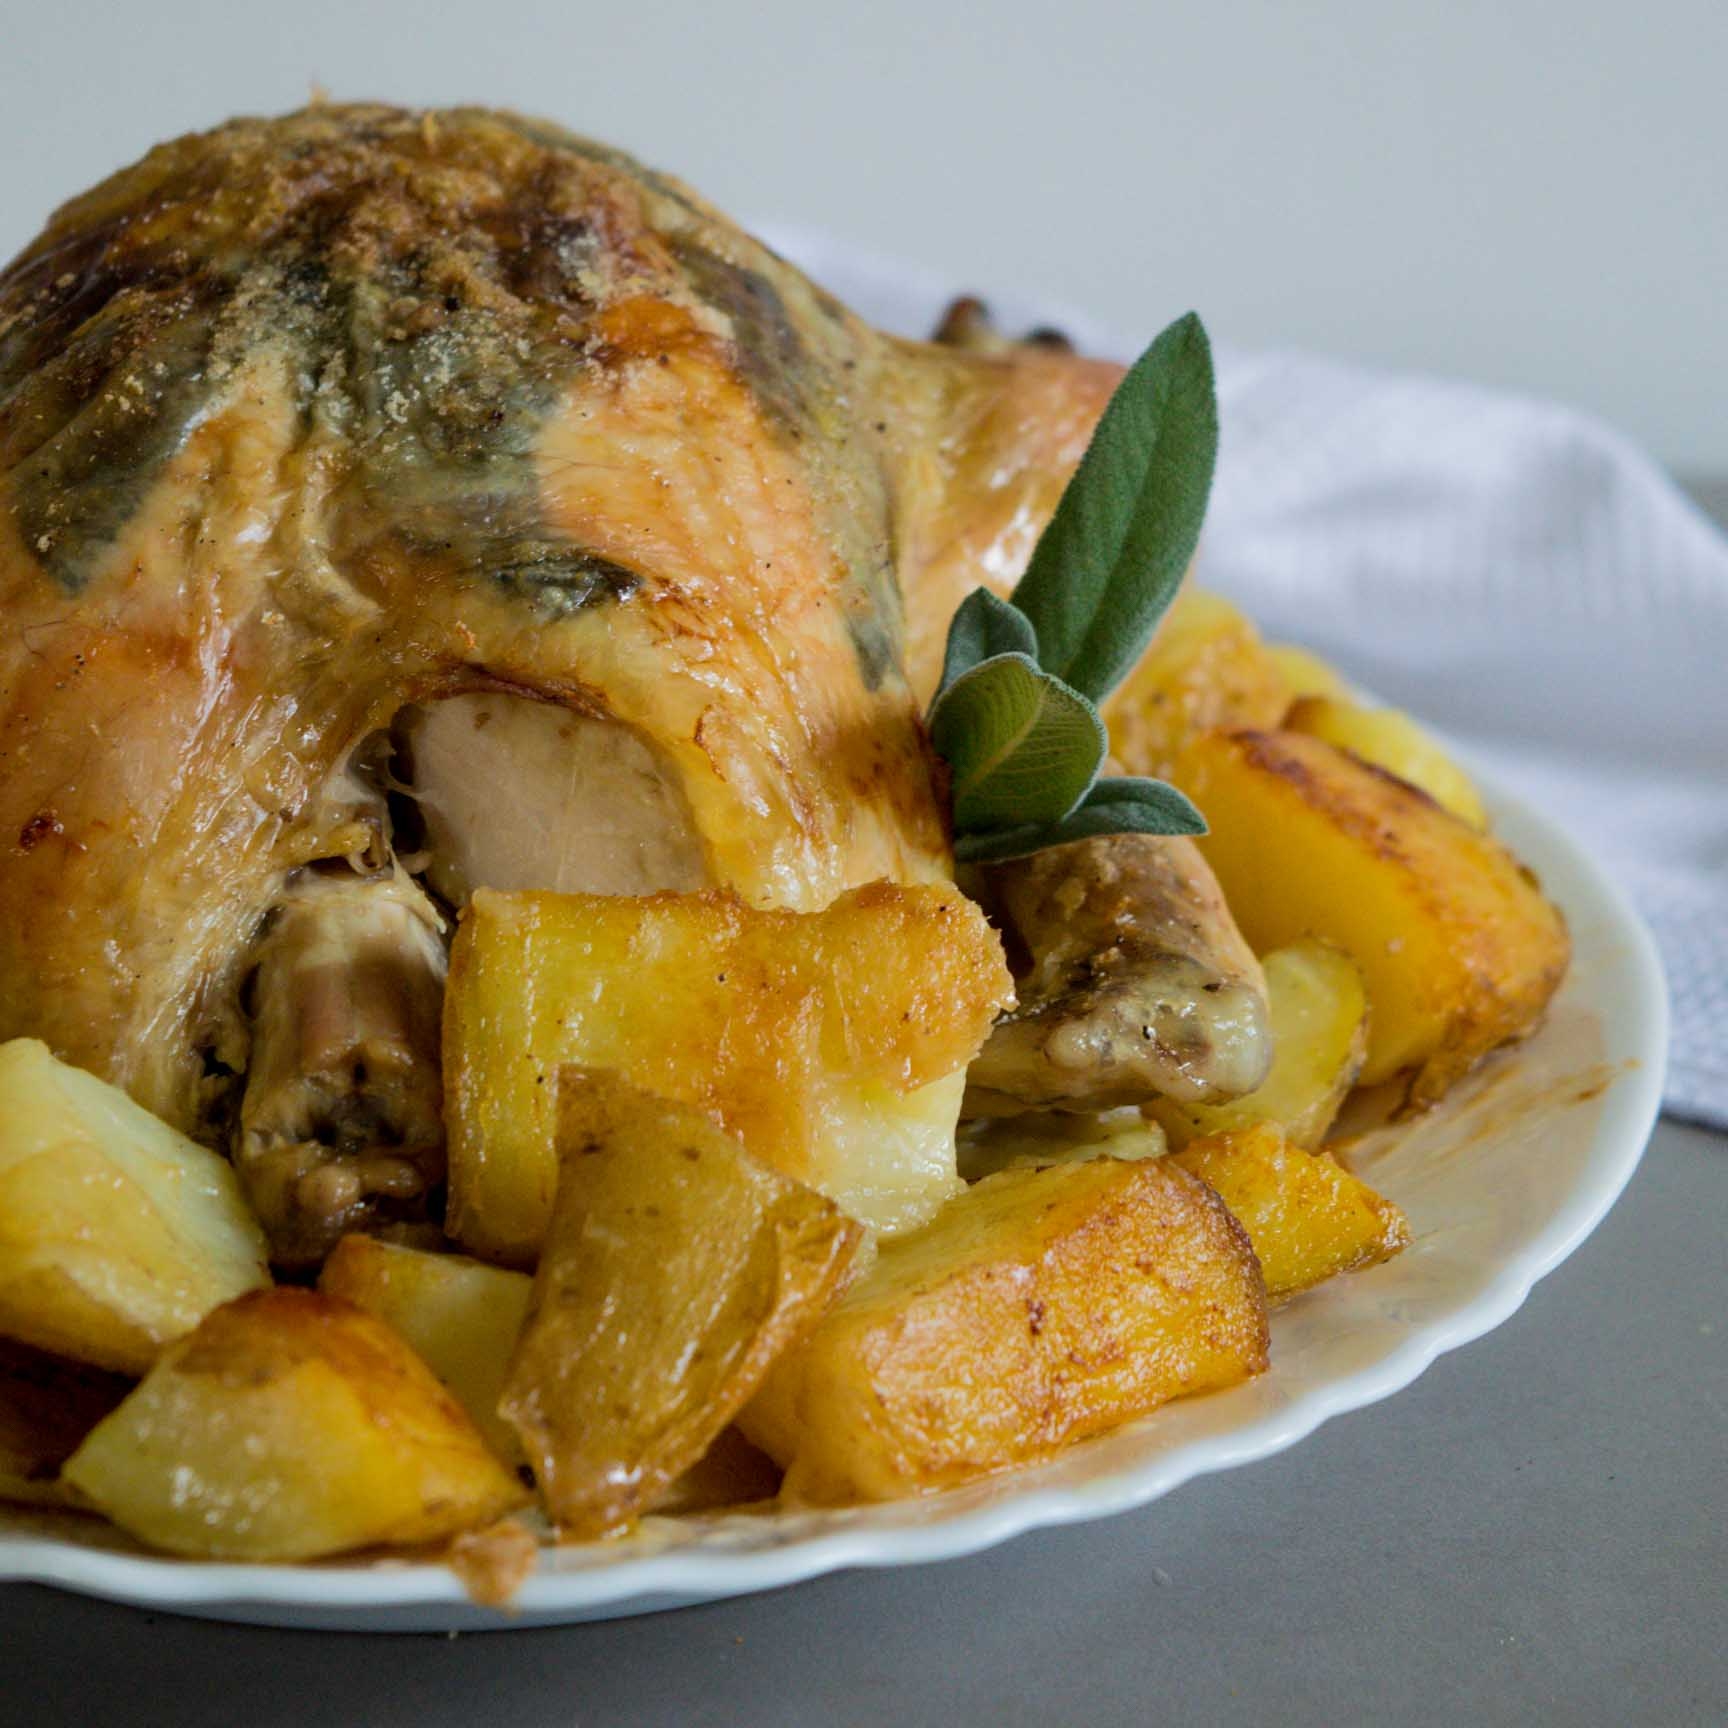 whole roasted sage chicken served on a platter with roasted potatoes